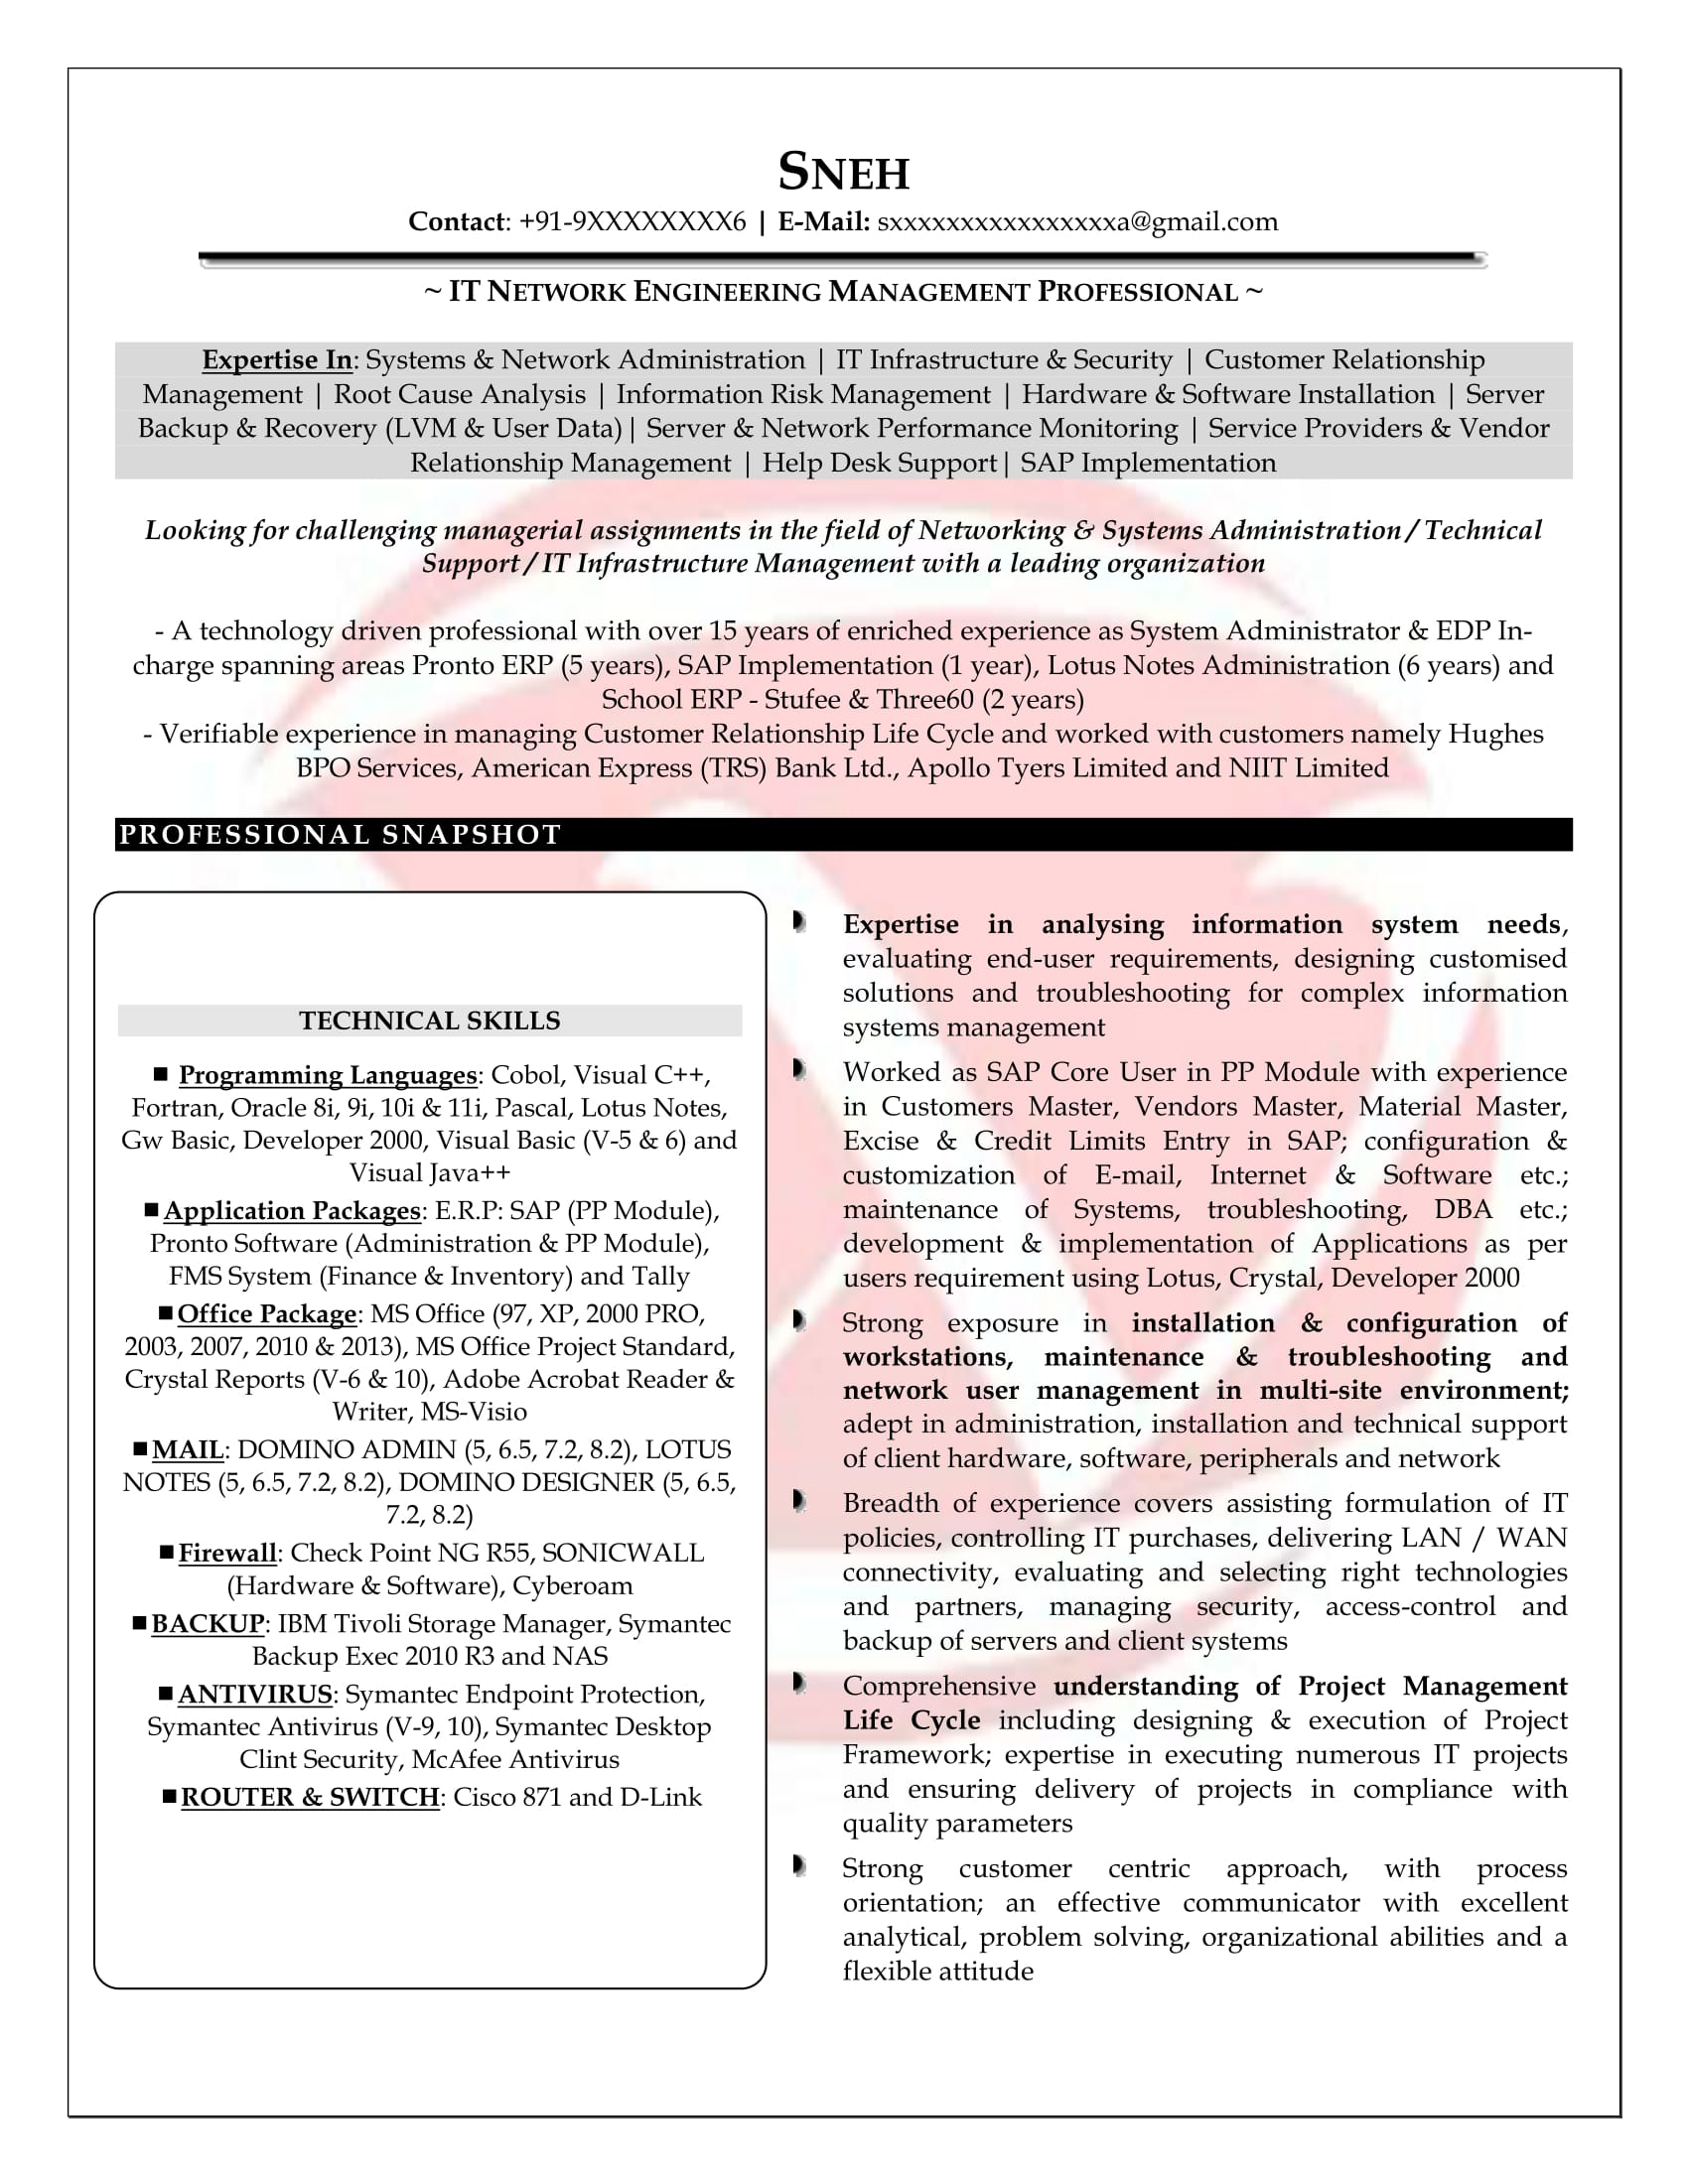 Resume For Network Engineer Network Engineer Sample Resumes Download Resume Format Templates